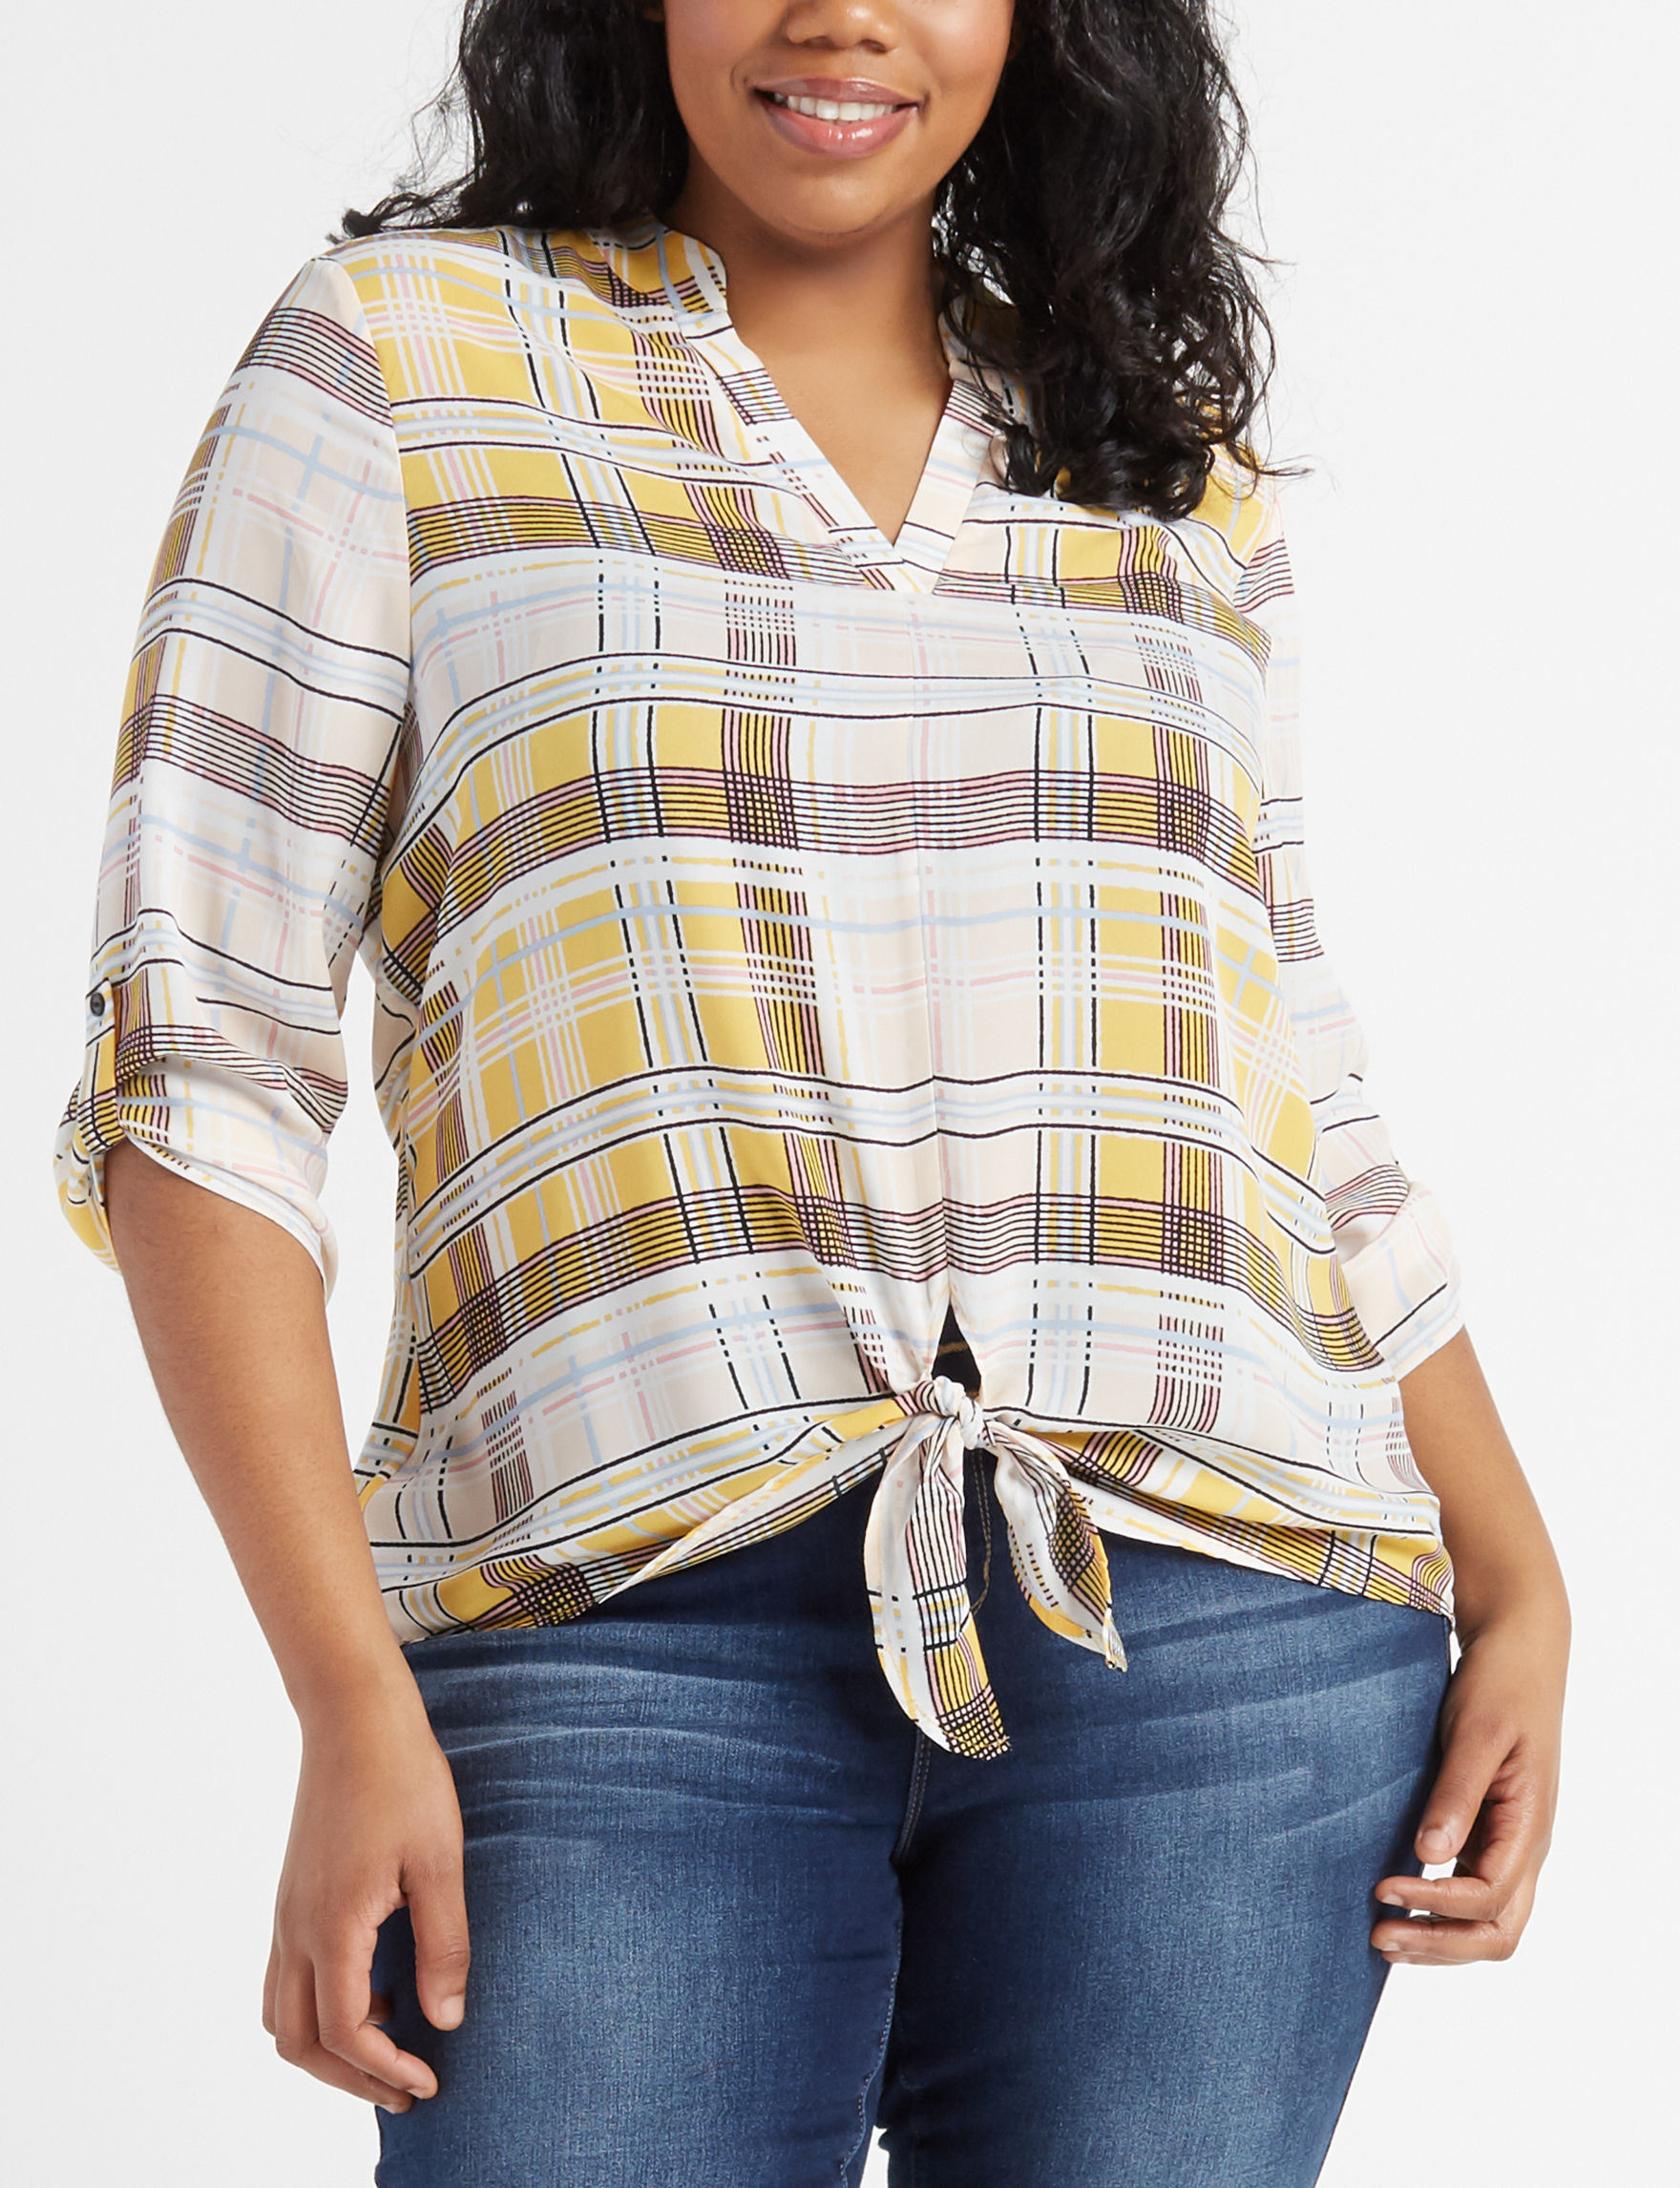 Liberty Love Yellow Plaid Shirts & Blouses